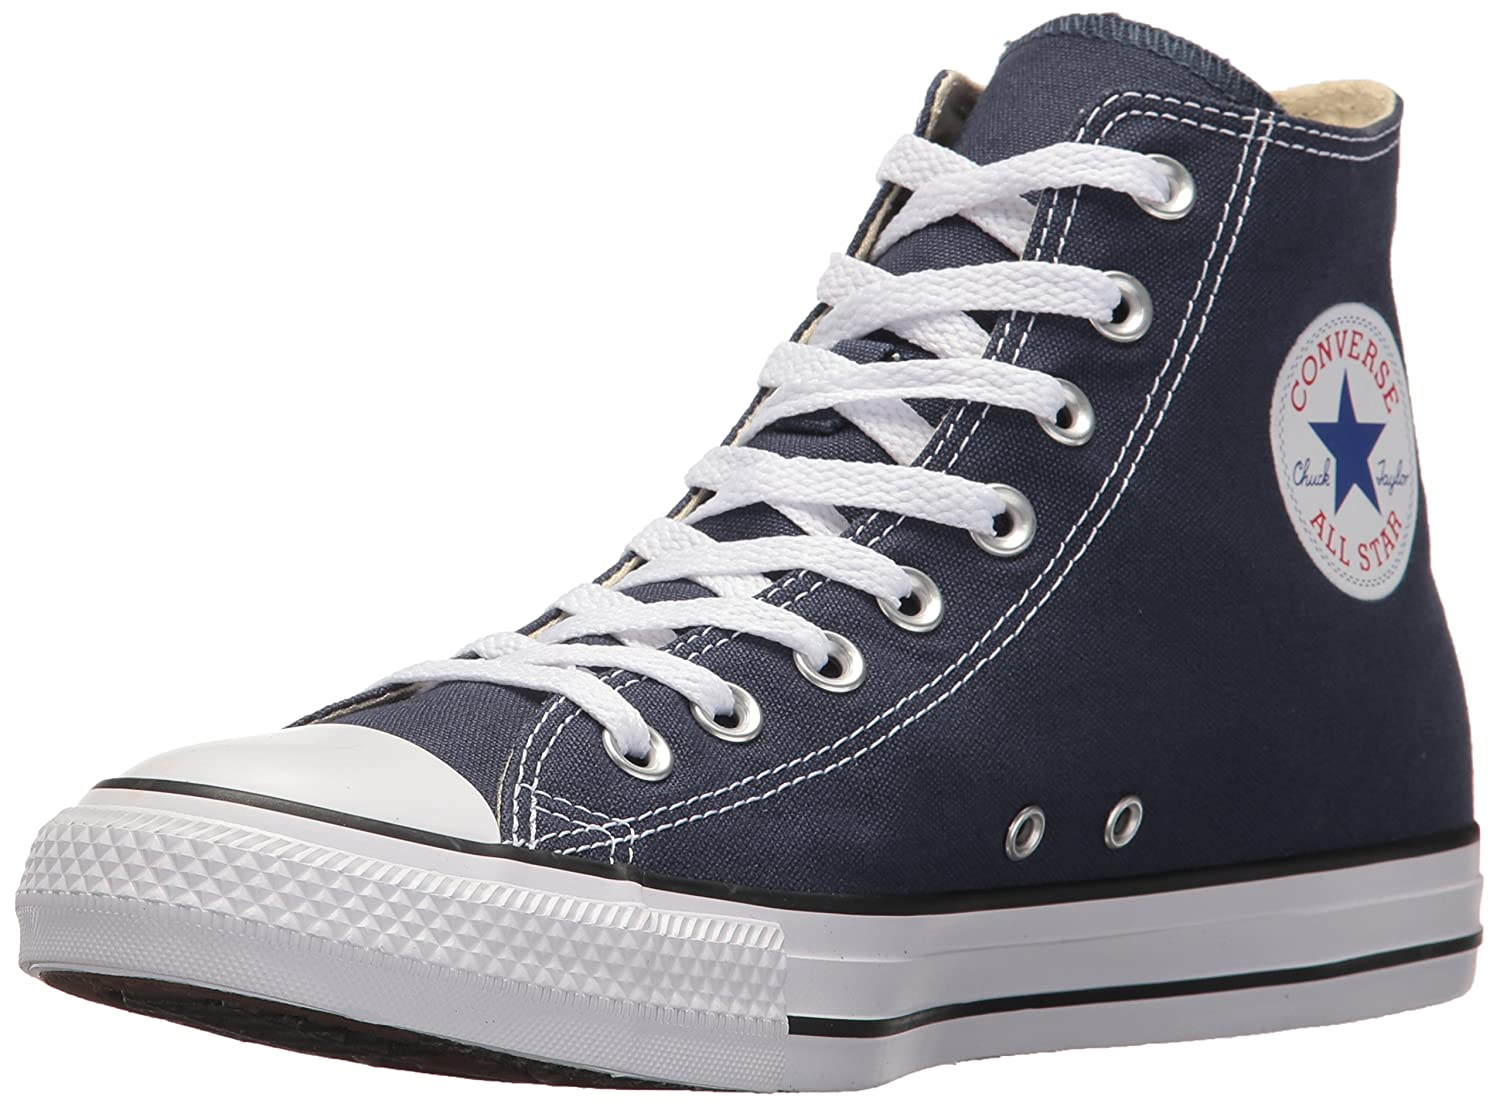 Converse Chuck Taylor All Star High Top B01KDZZXF8 11 D(M) US|Navy